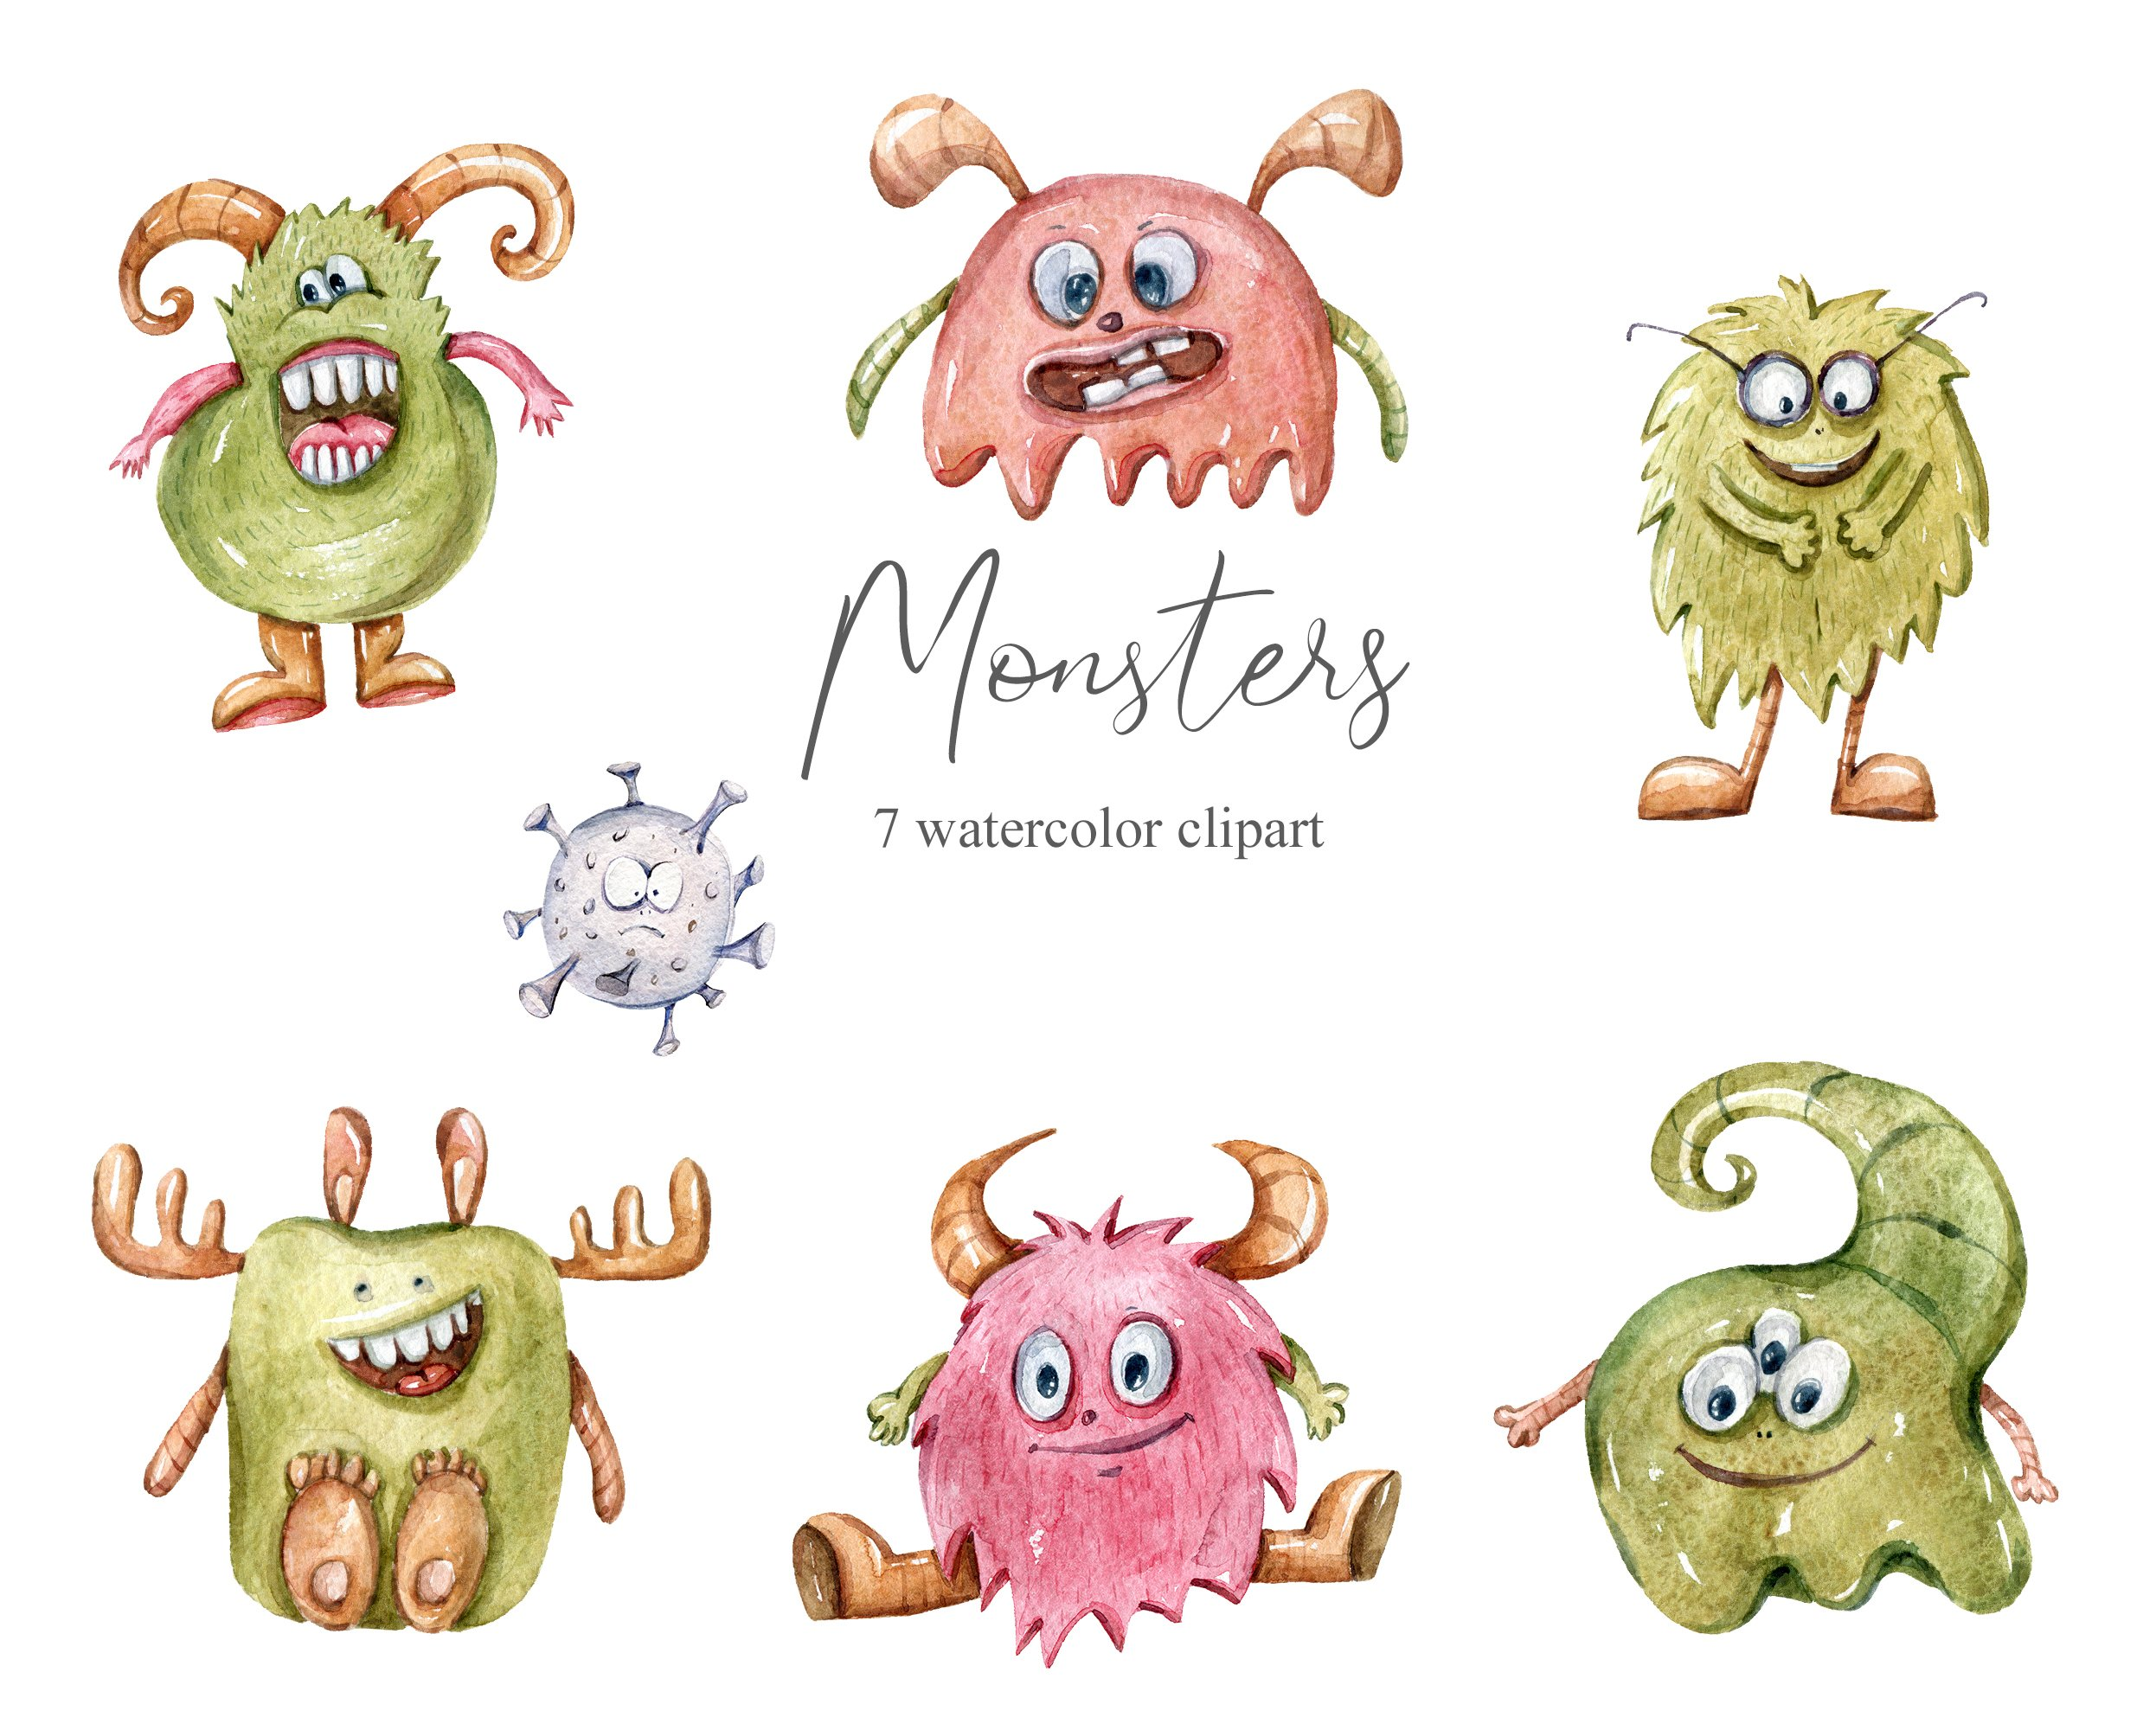 Watercolor monster clipart. Bacteria collection example image 2